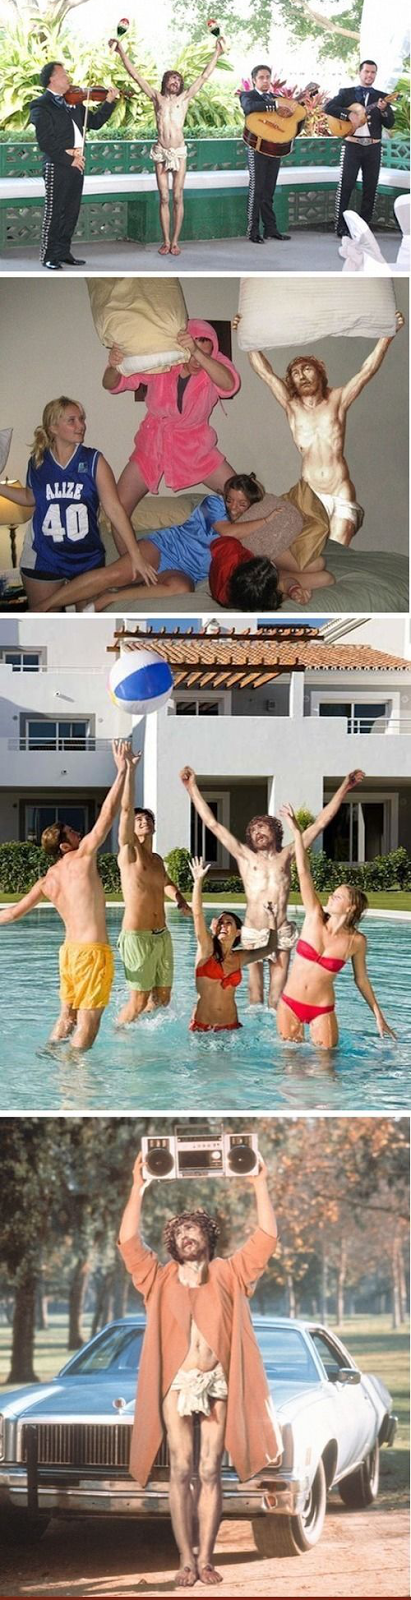 Funny Crucified Jesus Poses - Maracas, Pillow Fight, Pool party, ghetto blaster